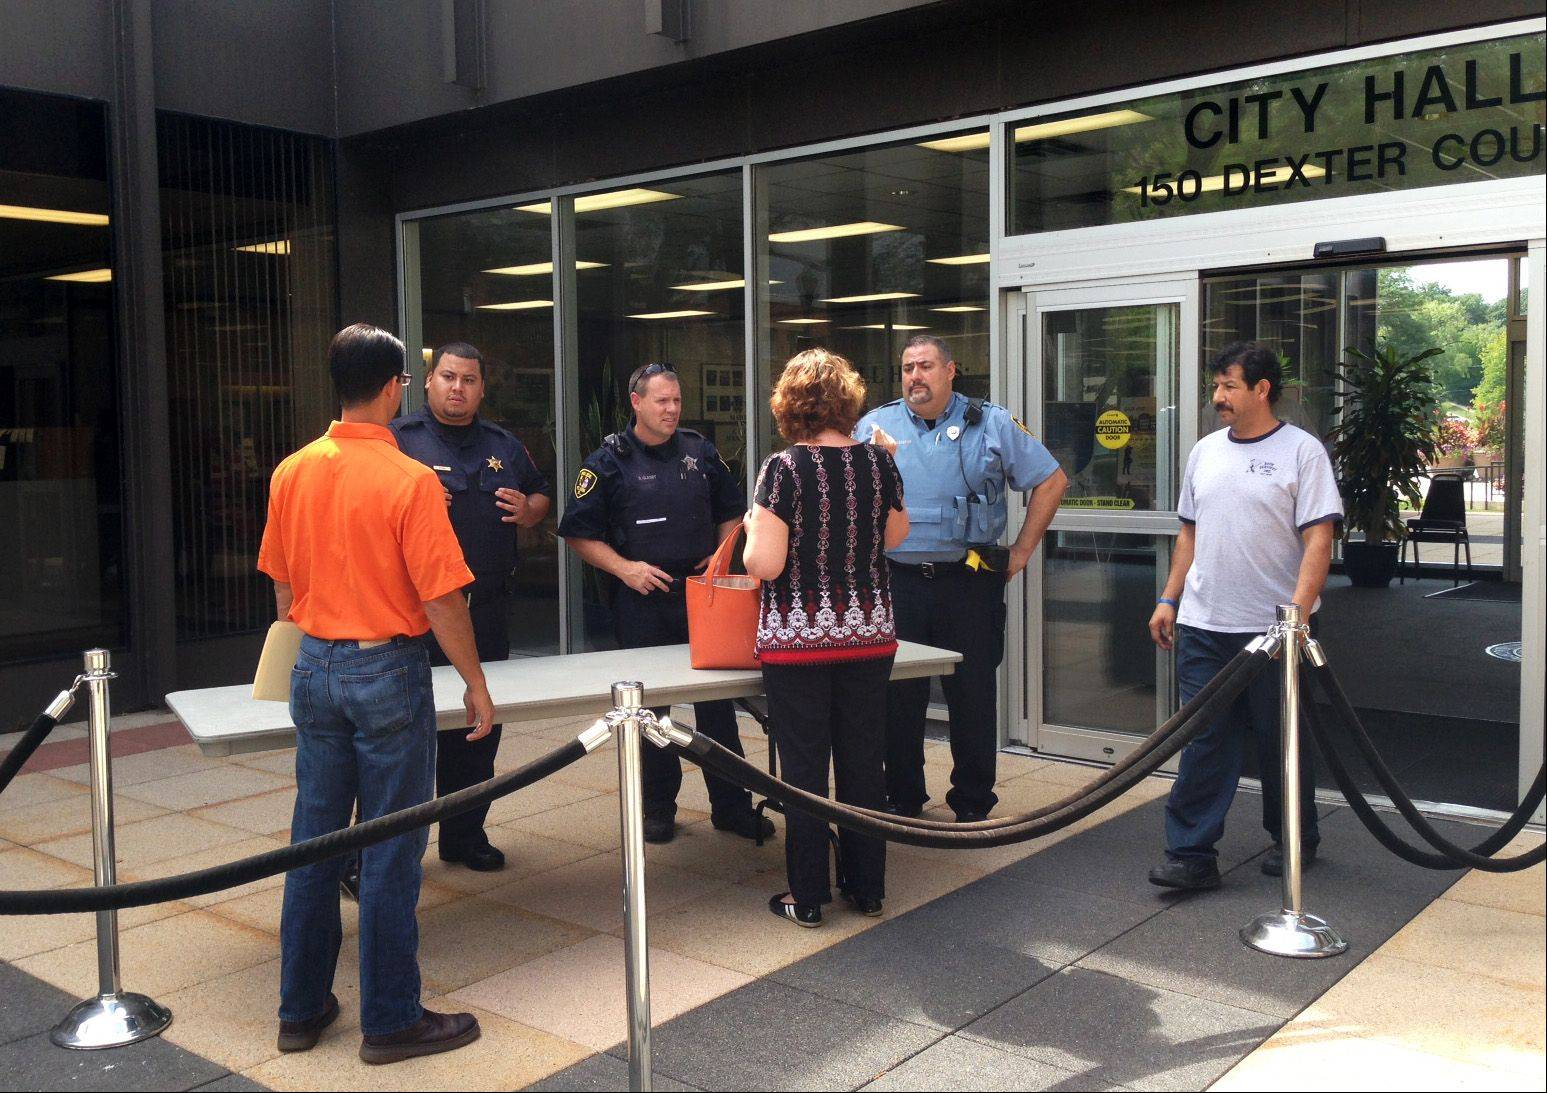 The Elgin branch court reopened by 1 p.m. Wednesday after a bomb threat earlier in the day. Elgin police set up a bag check for the rest of the day outside city hall, where the court is located.